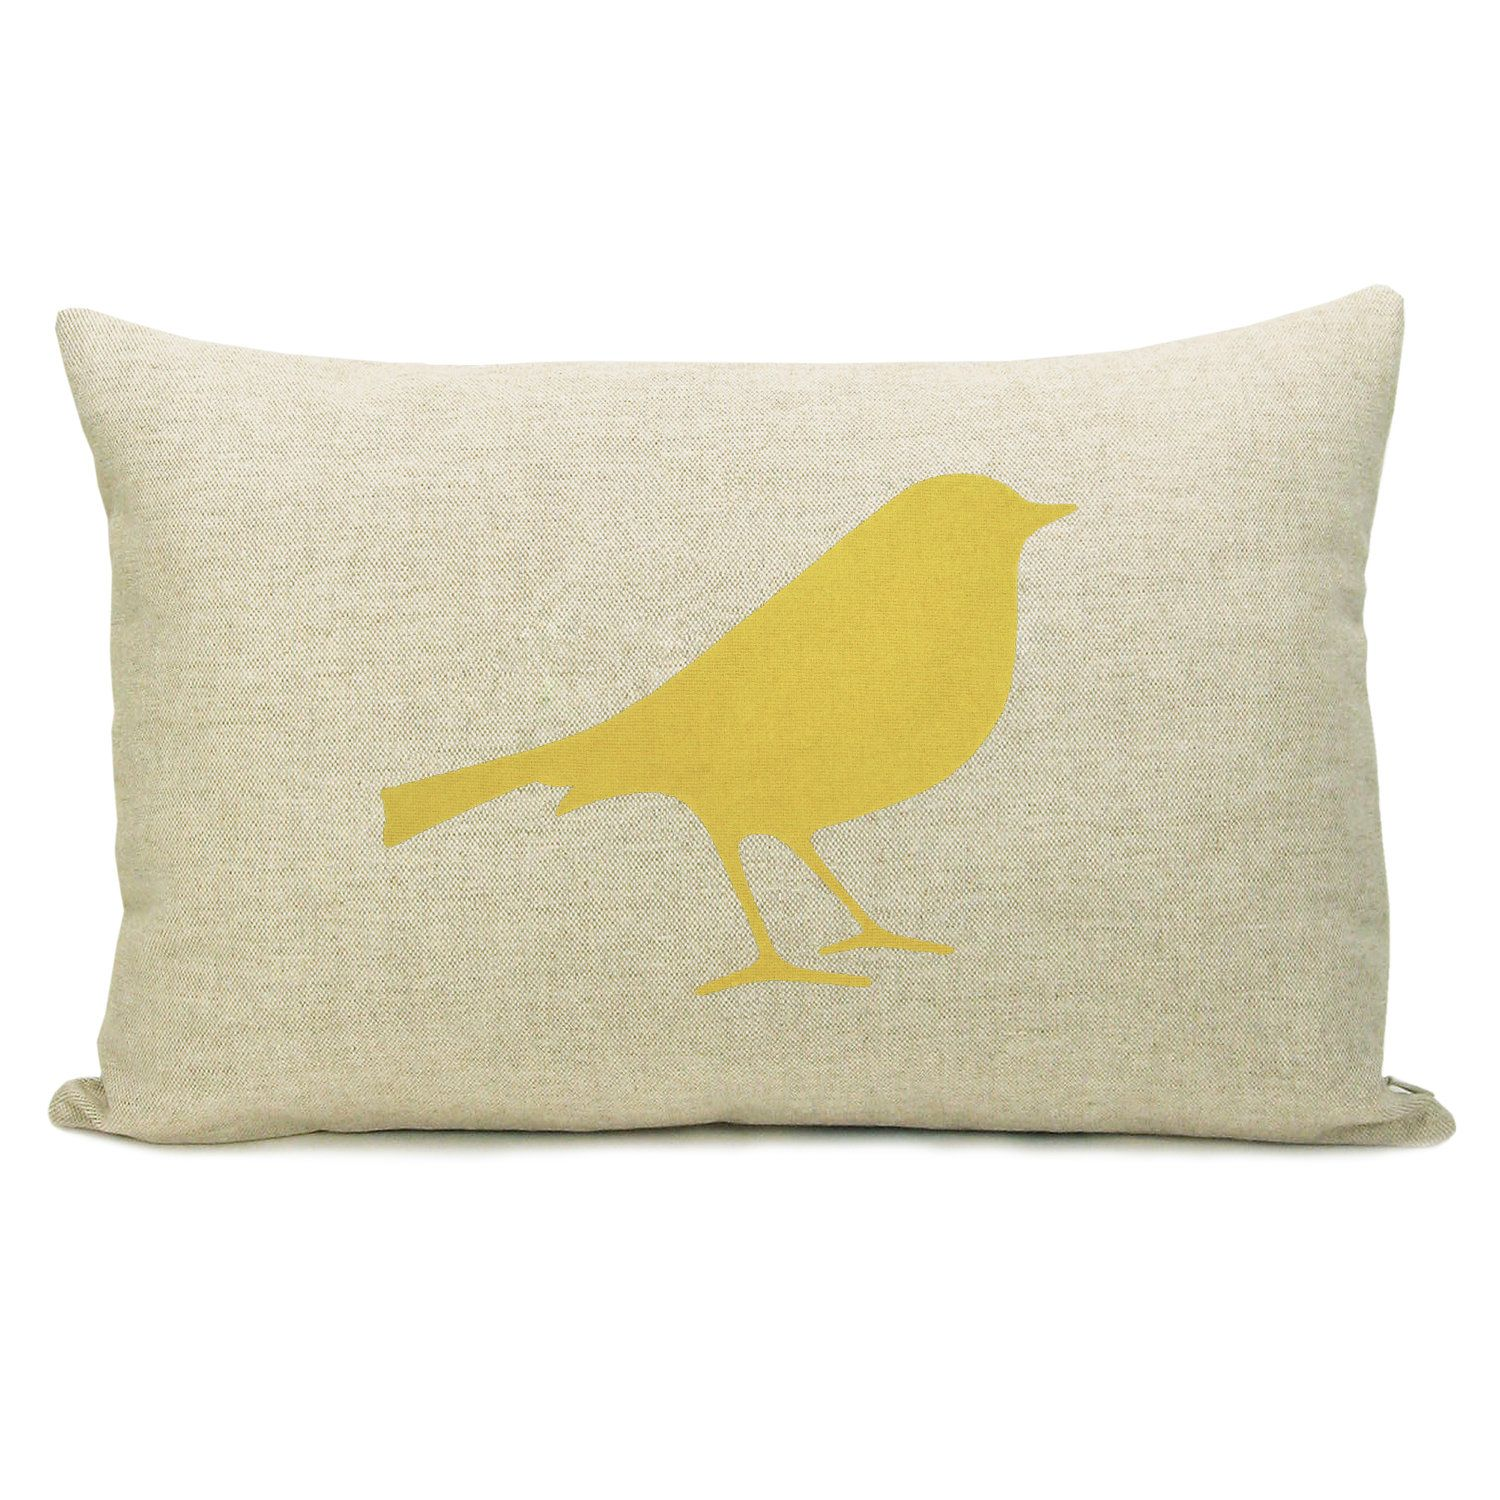 Lumbar 12x18 16x16 Or 18x18 Decorative Bird Pillow Case In Mustard Yellow And Natural Beige Linen Modern Woodland Accent Cushion Cover Personalized Pillow Cases Pillows Bird Pillow